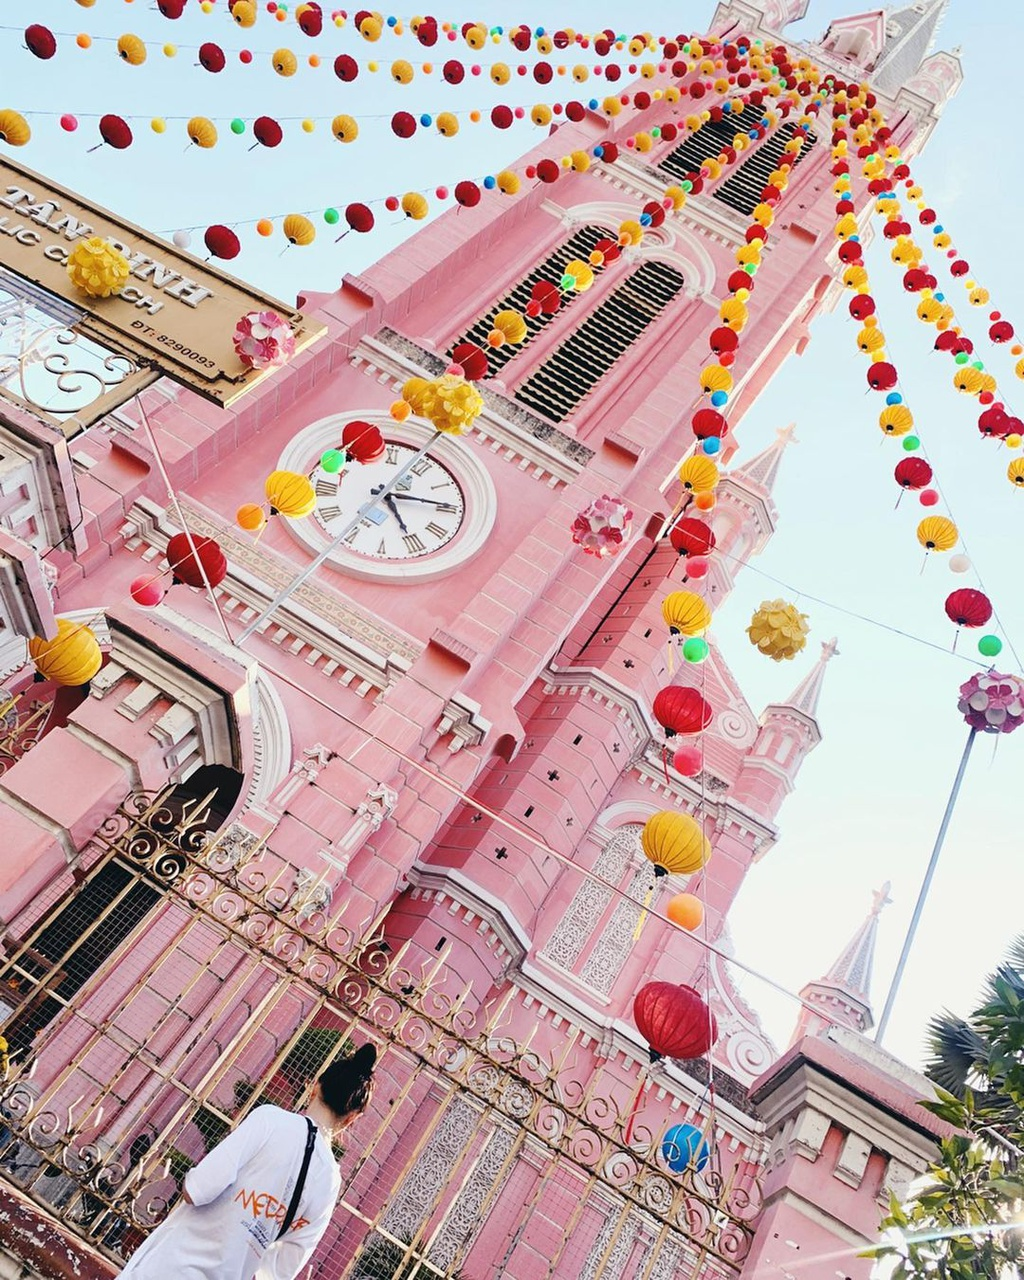 Hundred-year-old churches loved as stunning check-in sites in HCMC